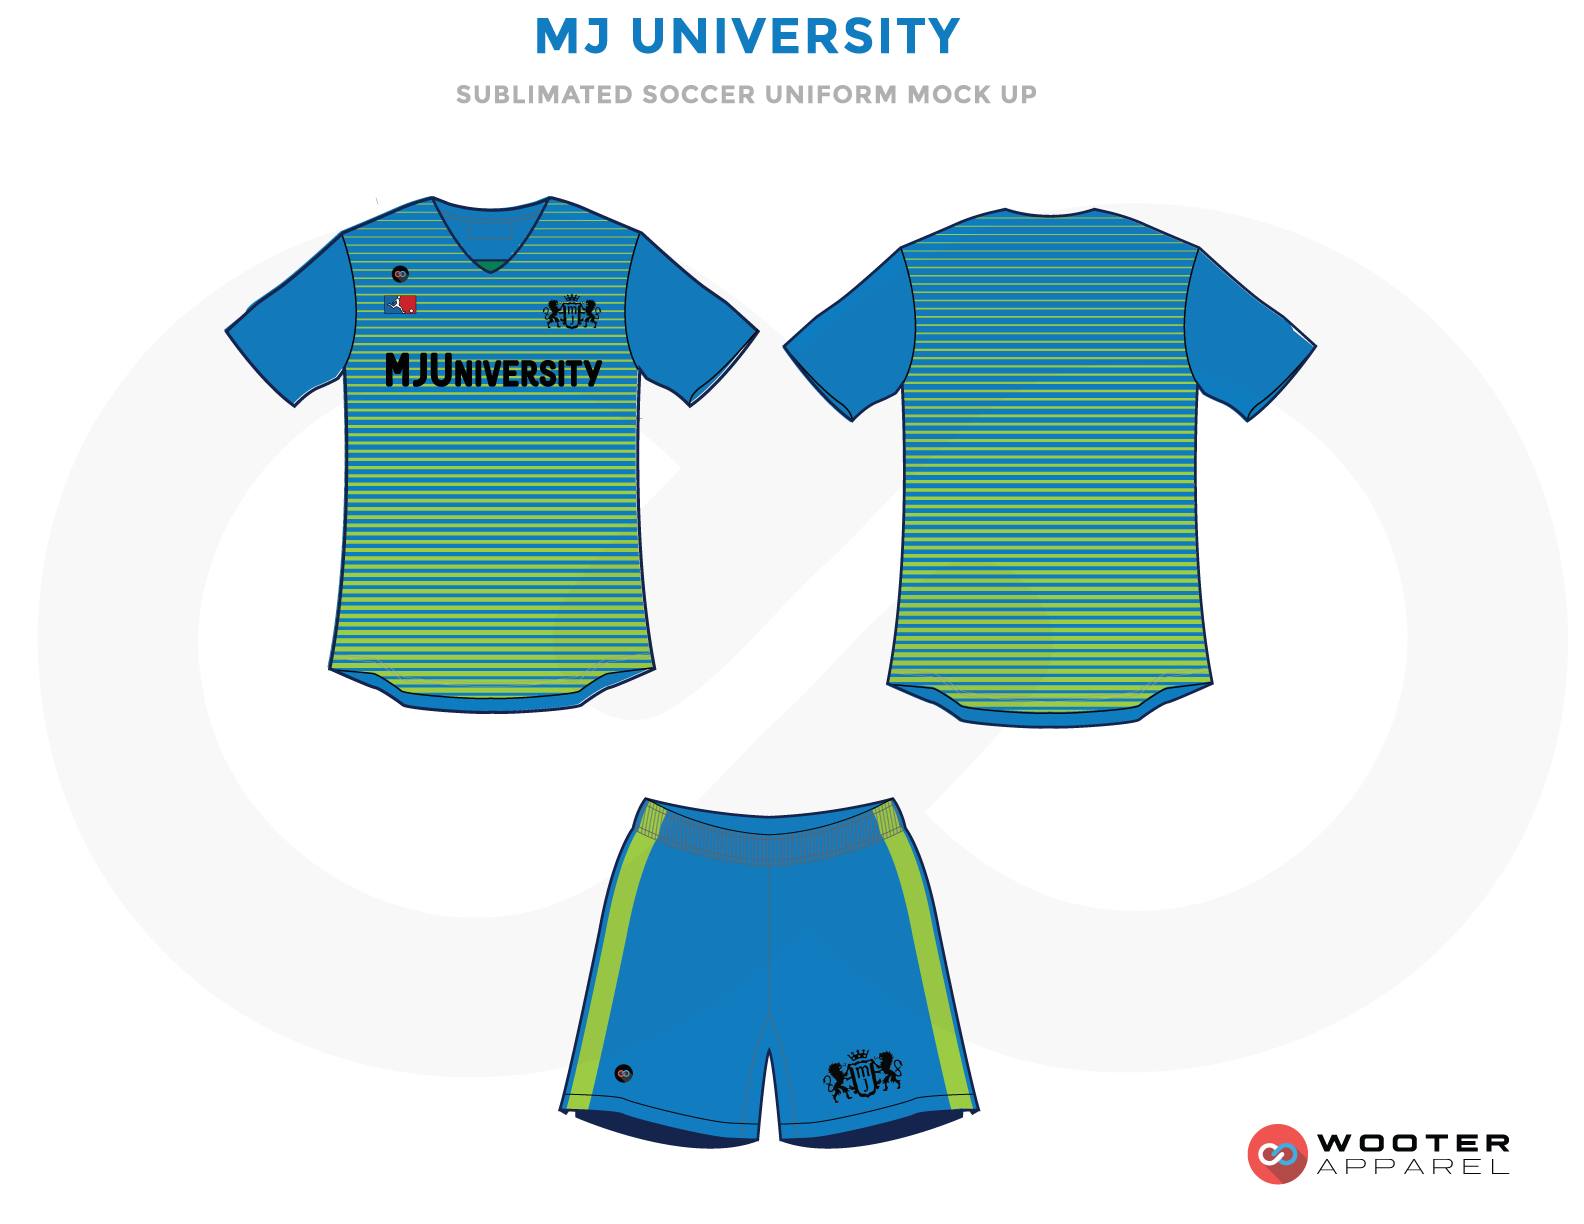 MJ University Blue Green and Teal Soccer Uniform, Jersey and Shorts